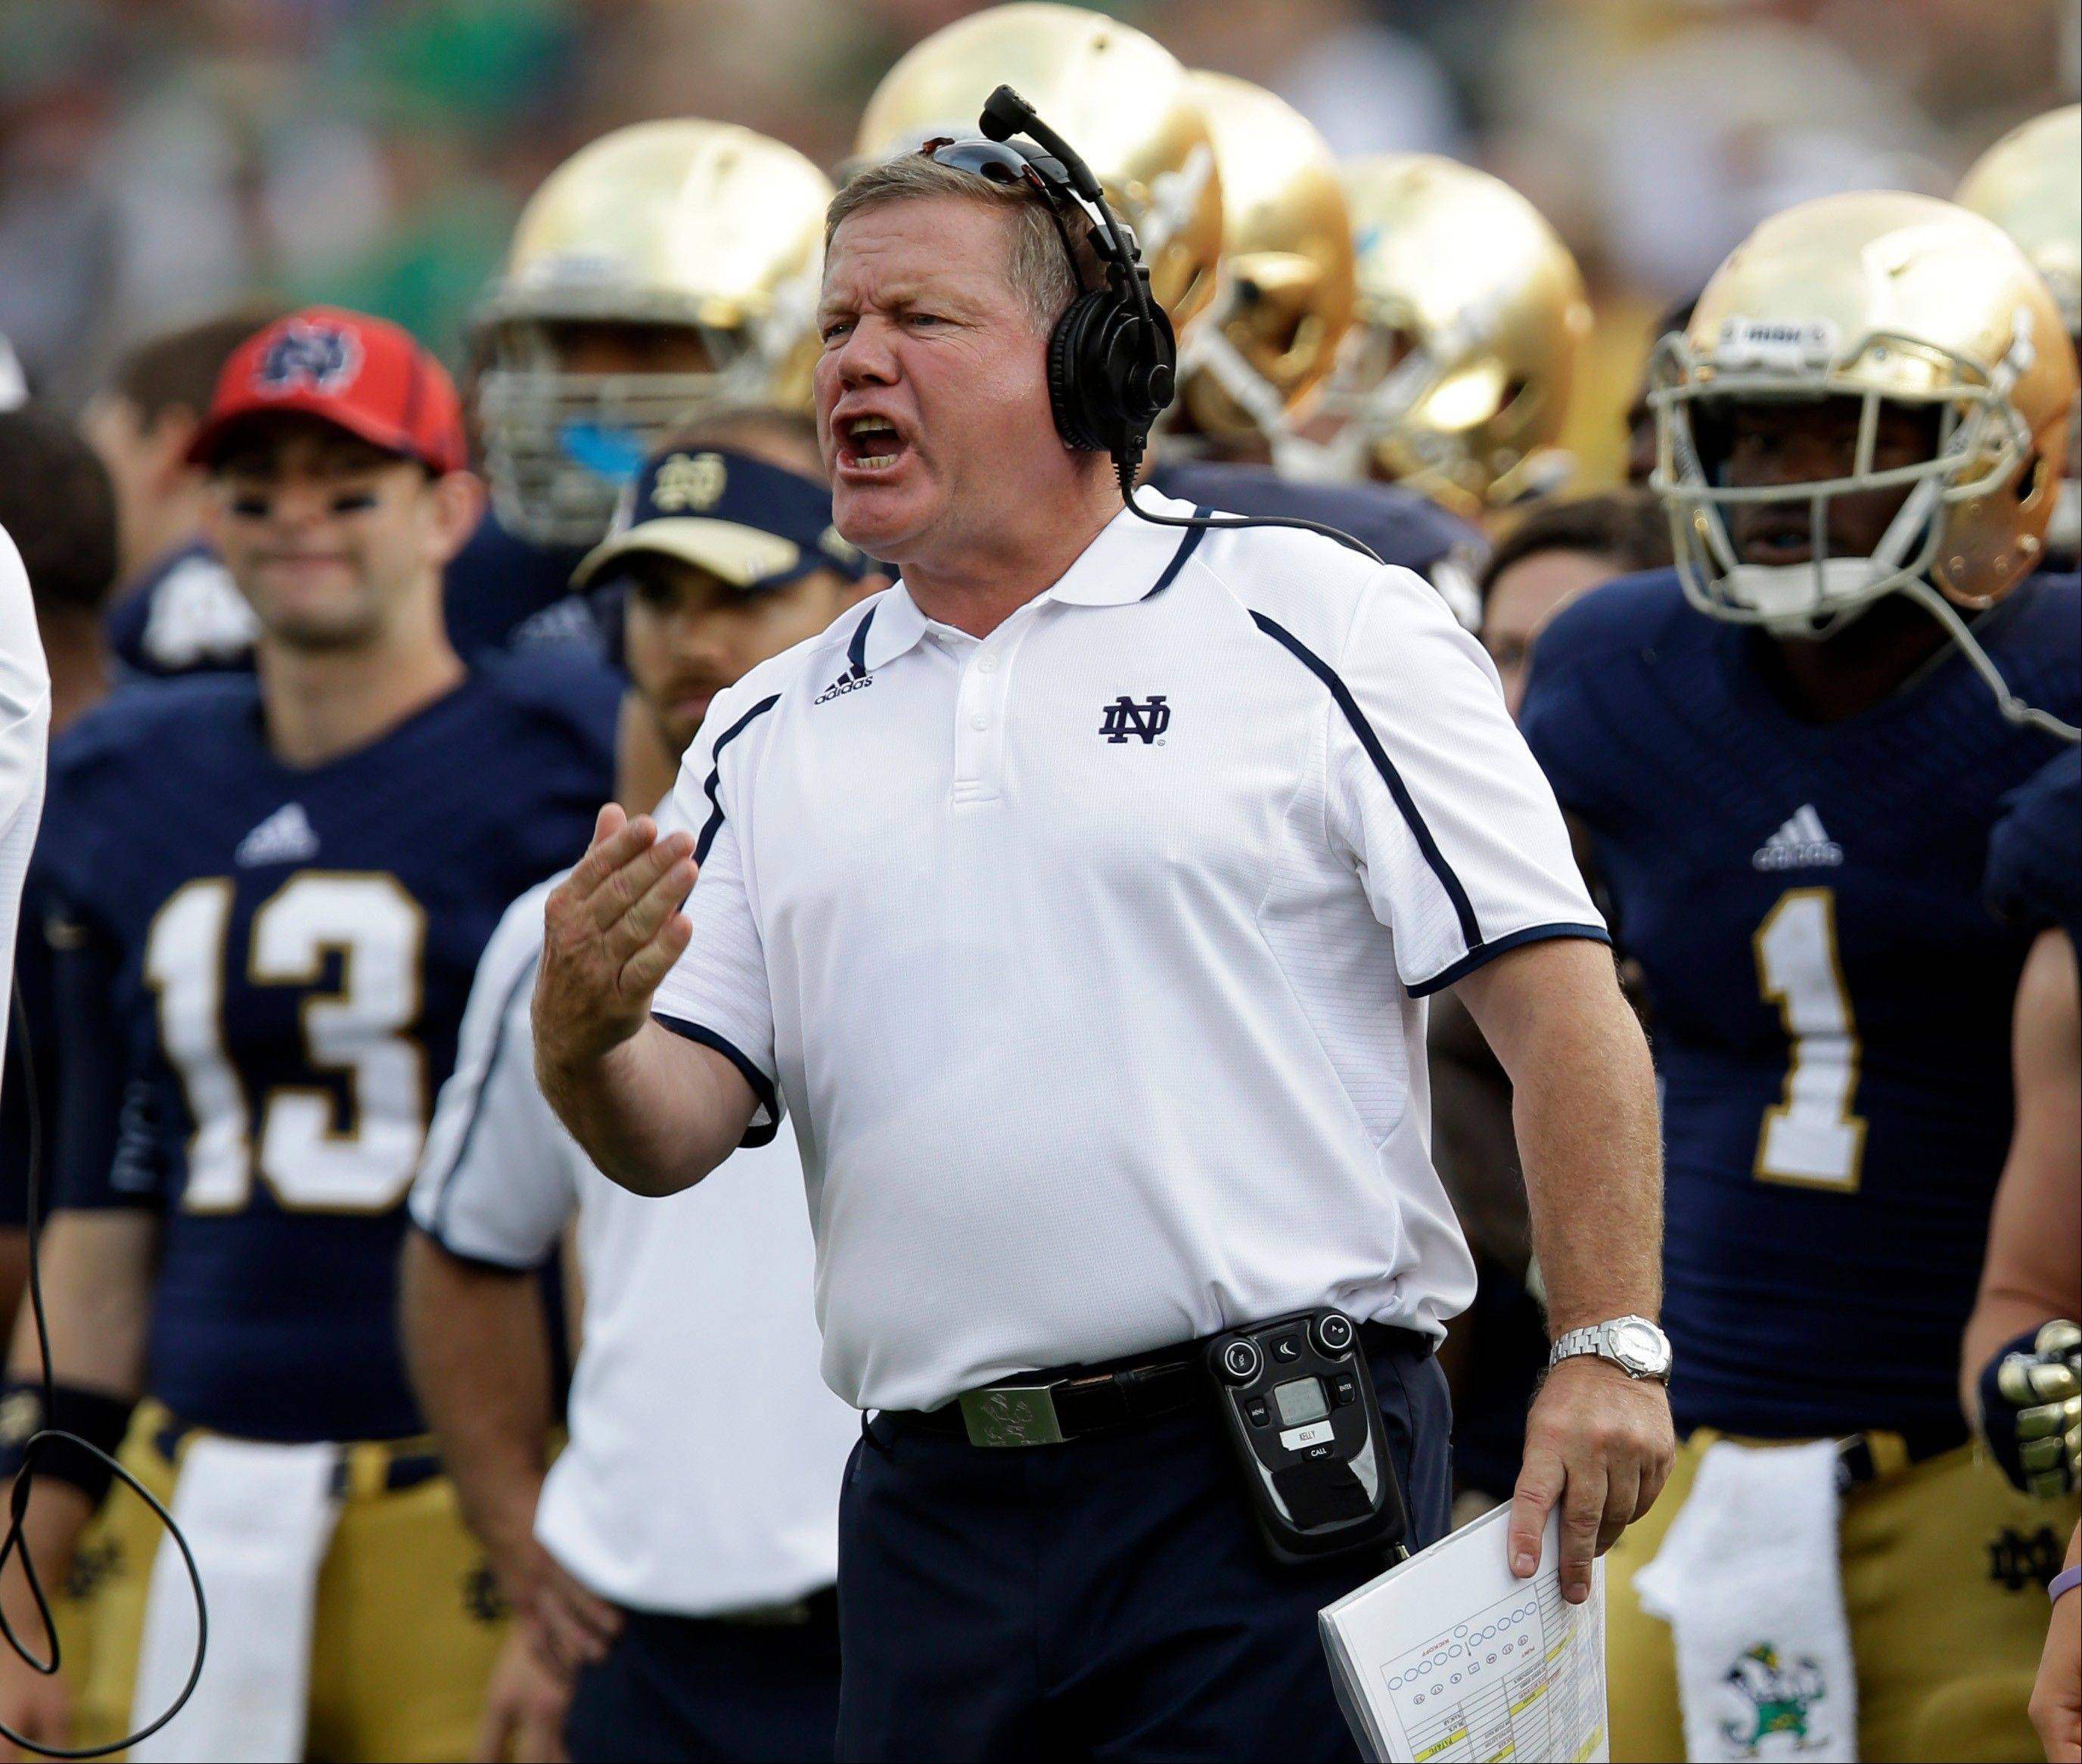 Notre Dame's Kelly: Michigan game a great, historic rivalry